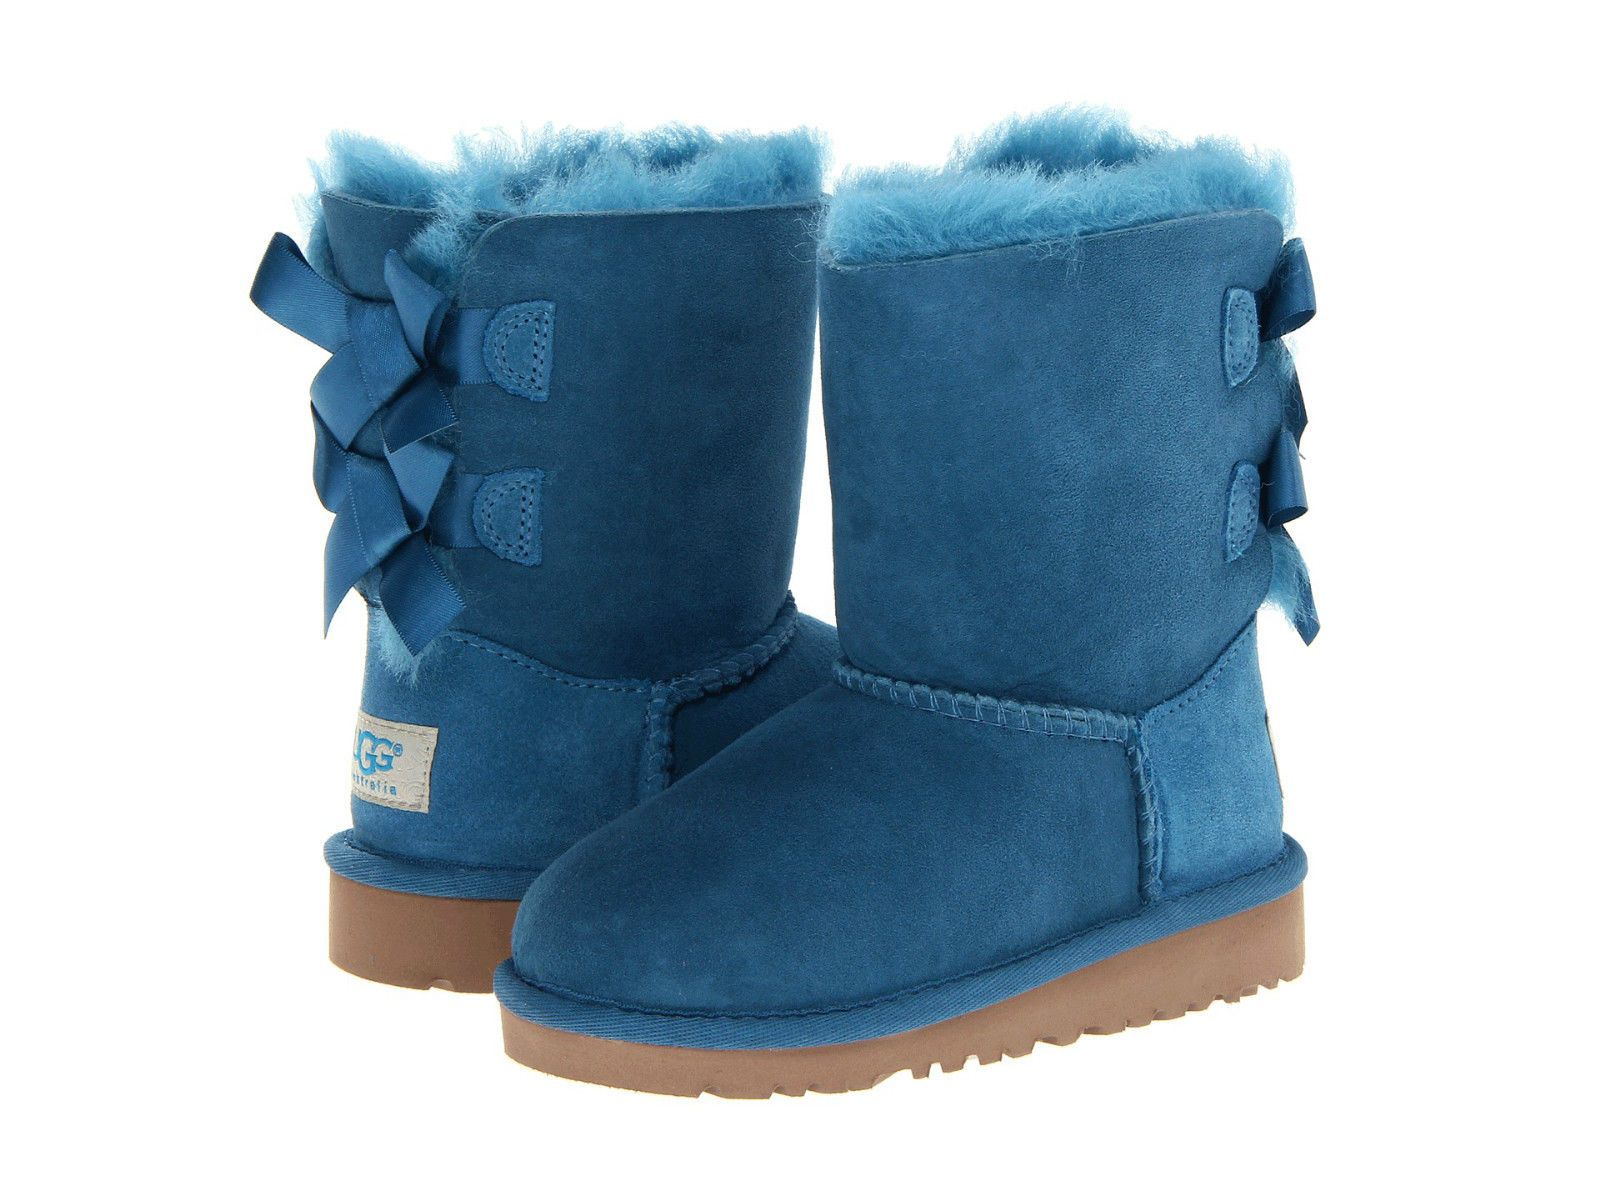 006289f51b9 NIB UGG Kids Bailey Bow Toddler Girls Boots Size 7 Peacock Blue Boot ...